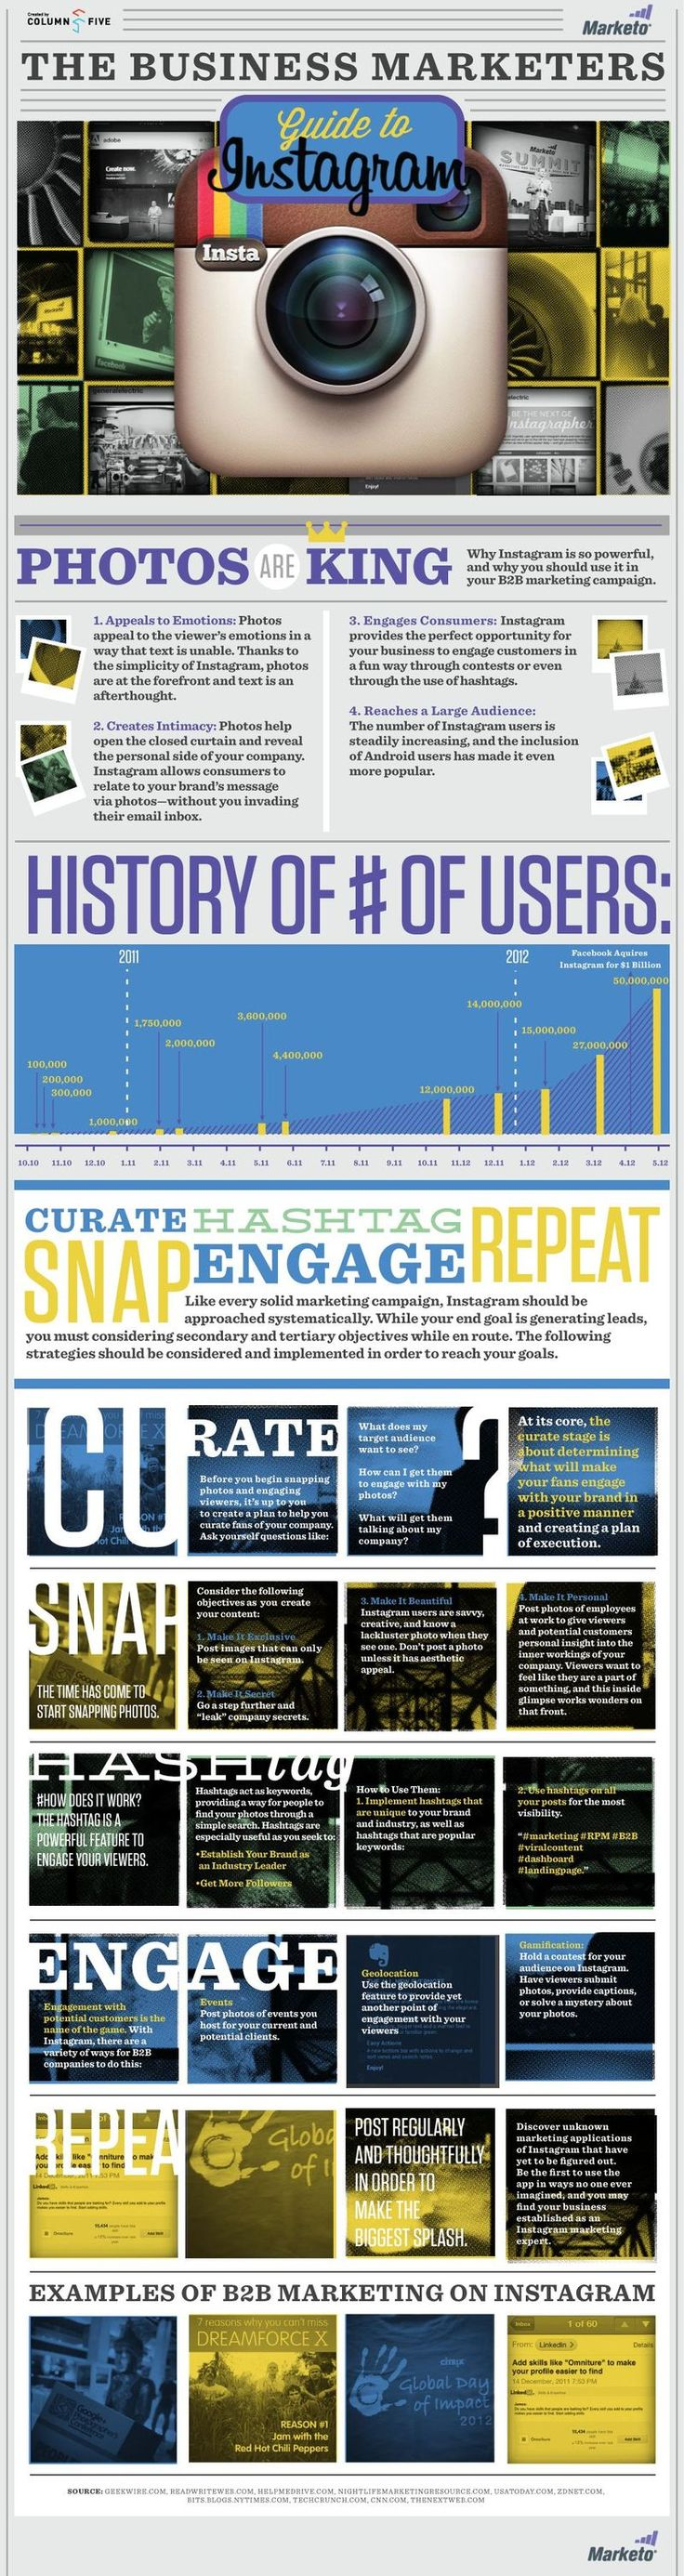 What Should Business #Marketers Know About #Instagram? #infographic